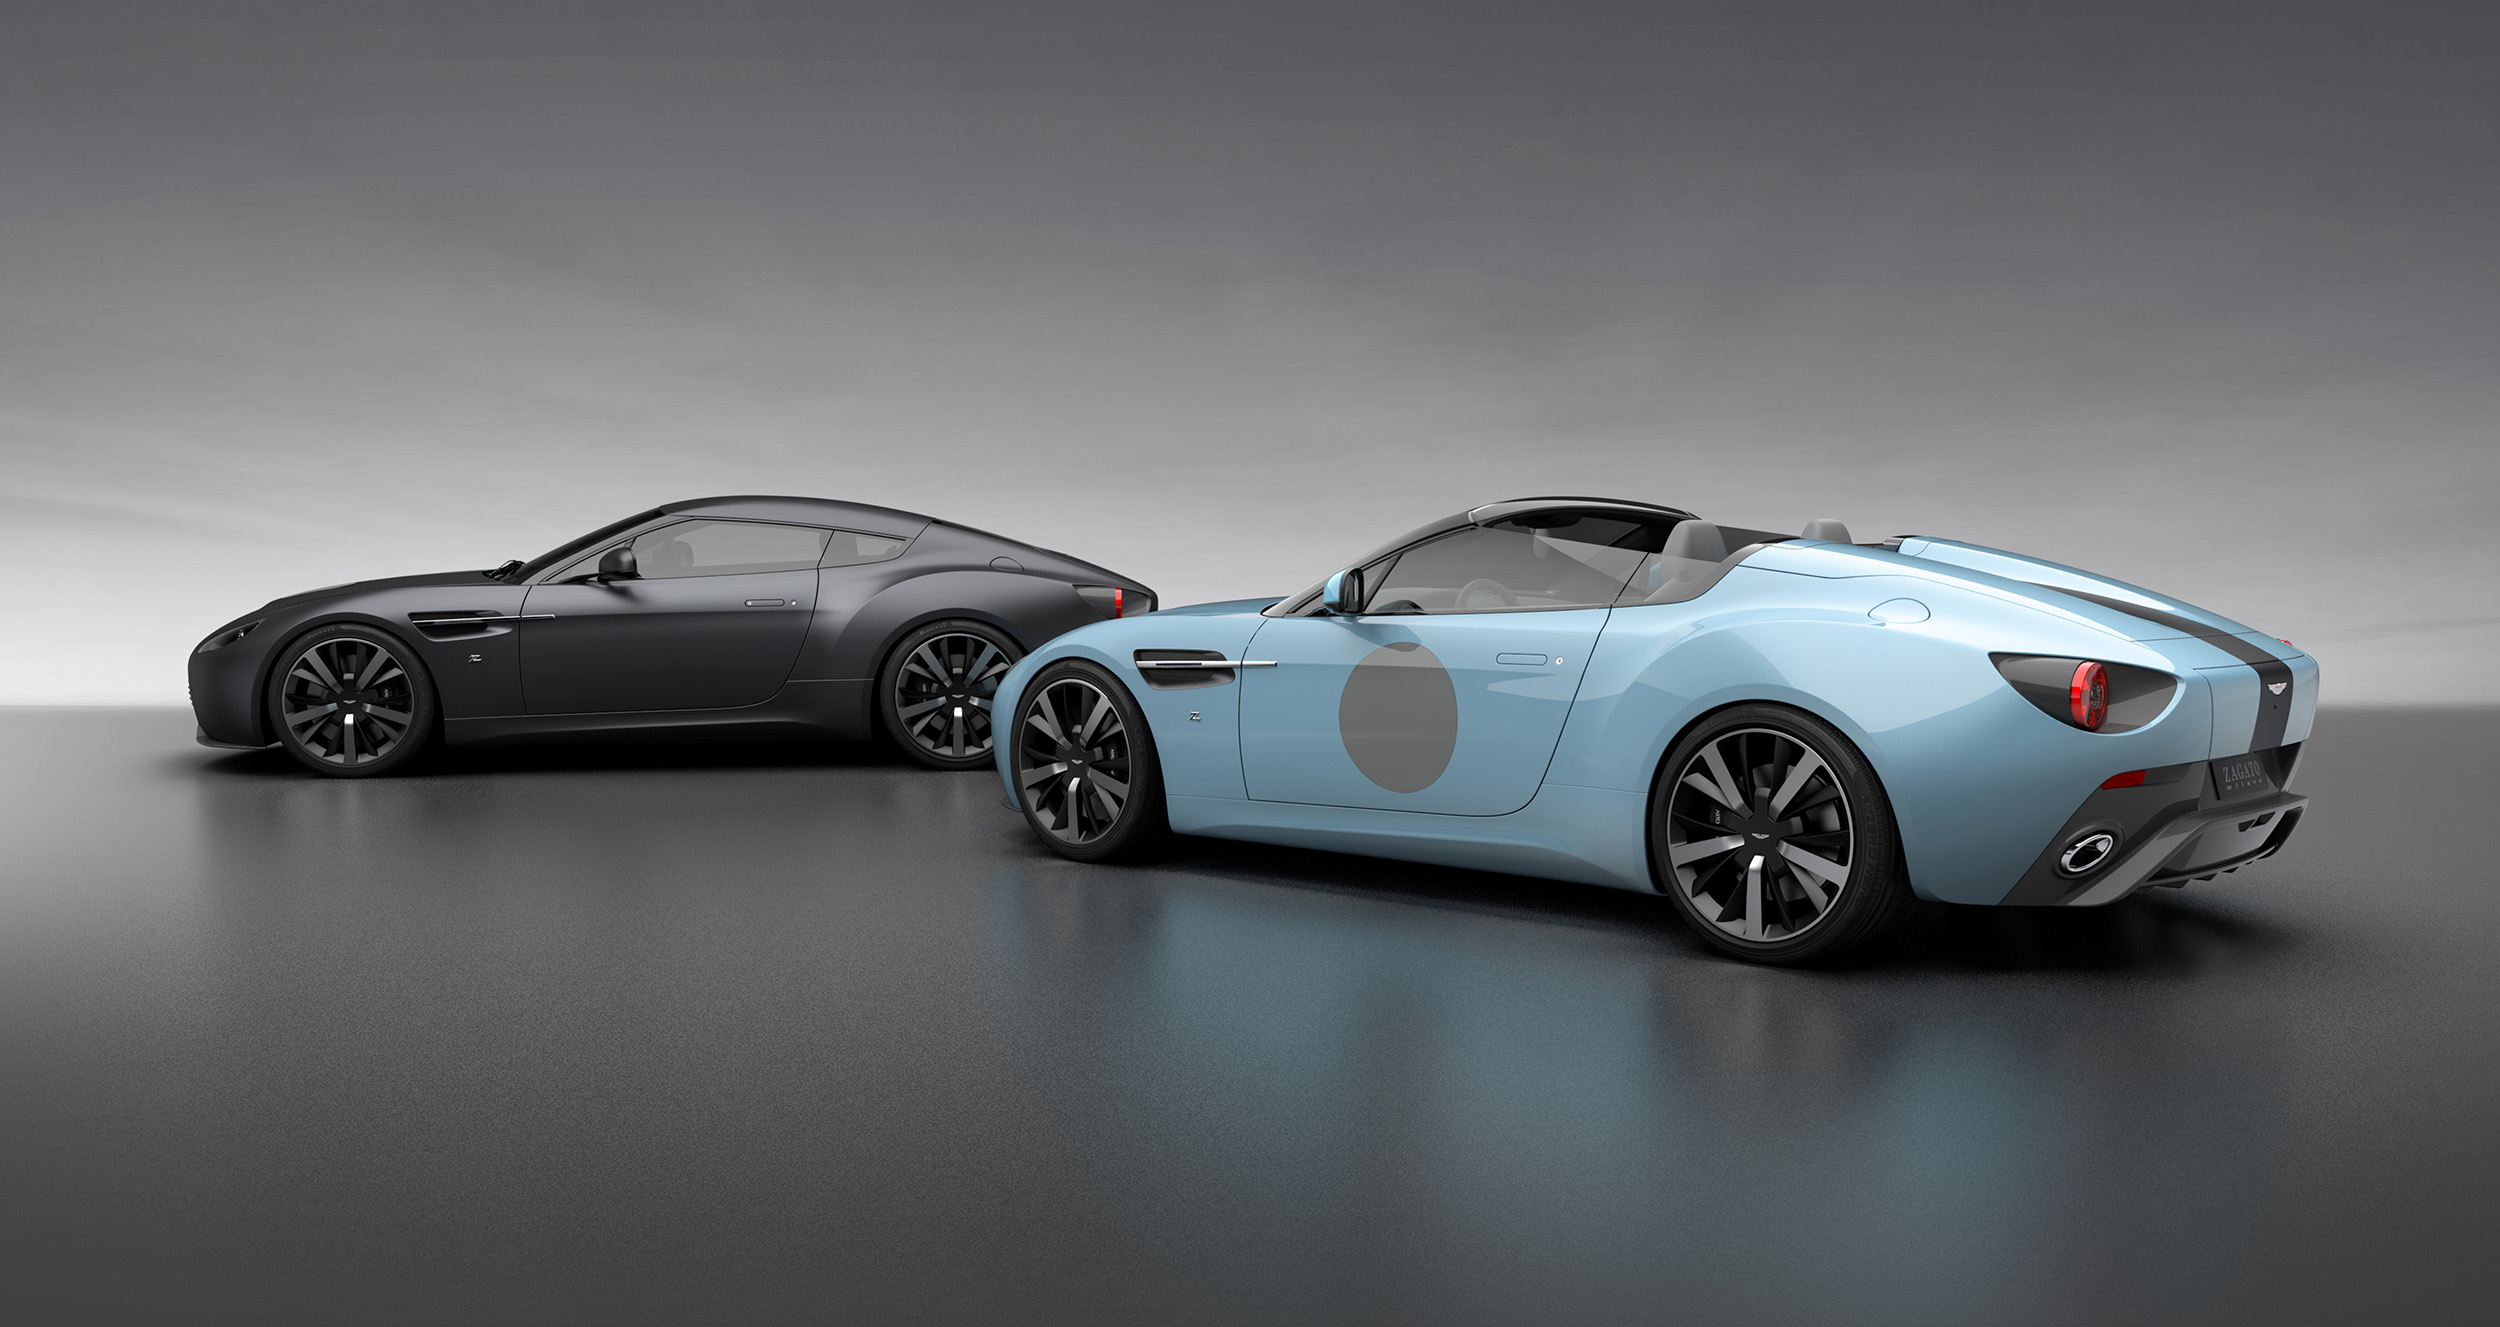 Zagato Celebrates 100th Anniversary With Aston Martin V12 Vantage Twins Autoevolution